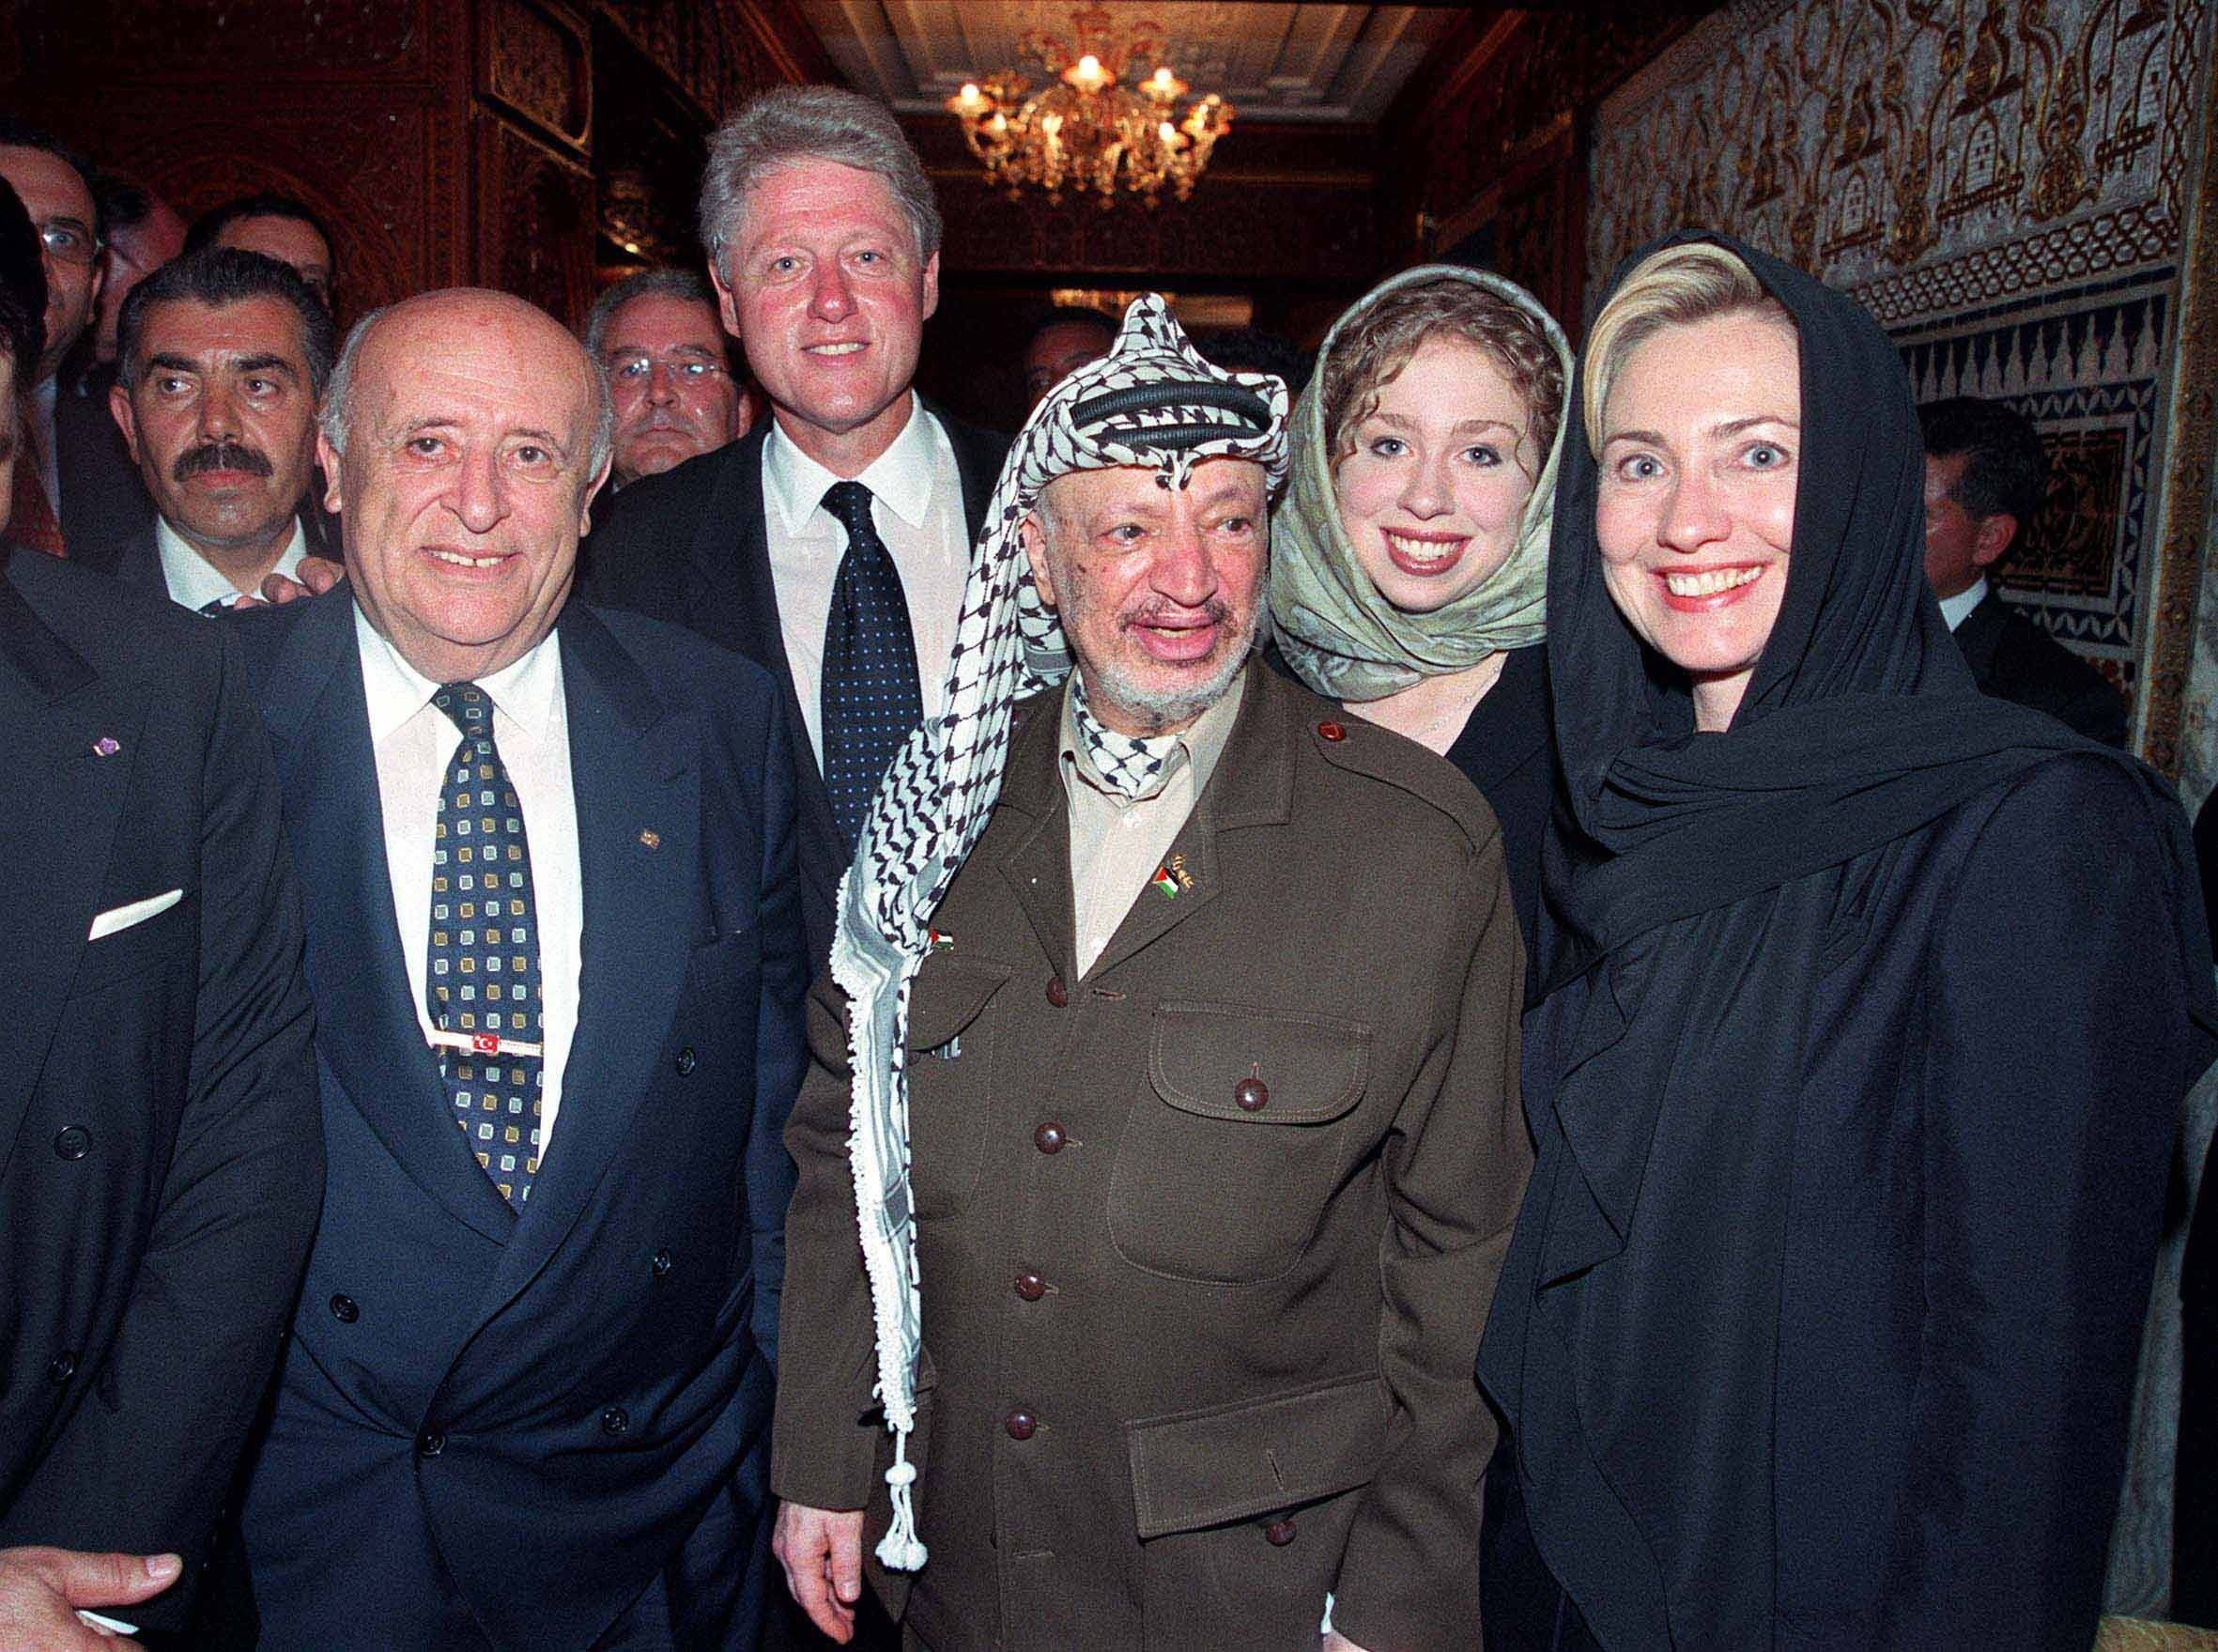 Turkish president Suleyman Demirel (L) next to former US President Bill Clinton, Palestinian Authority President Yasser Arafat, Chelsea Clinton and Hillary Clinton during the funeral for King Hassan II of Morocco. (Photo: Mustafa Abadan/Anadolu Agency/Getty Images)